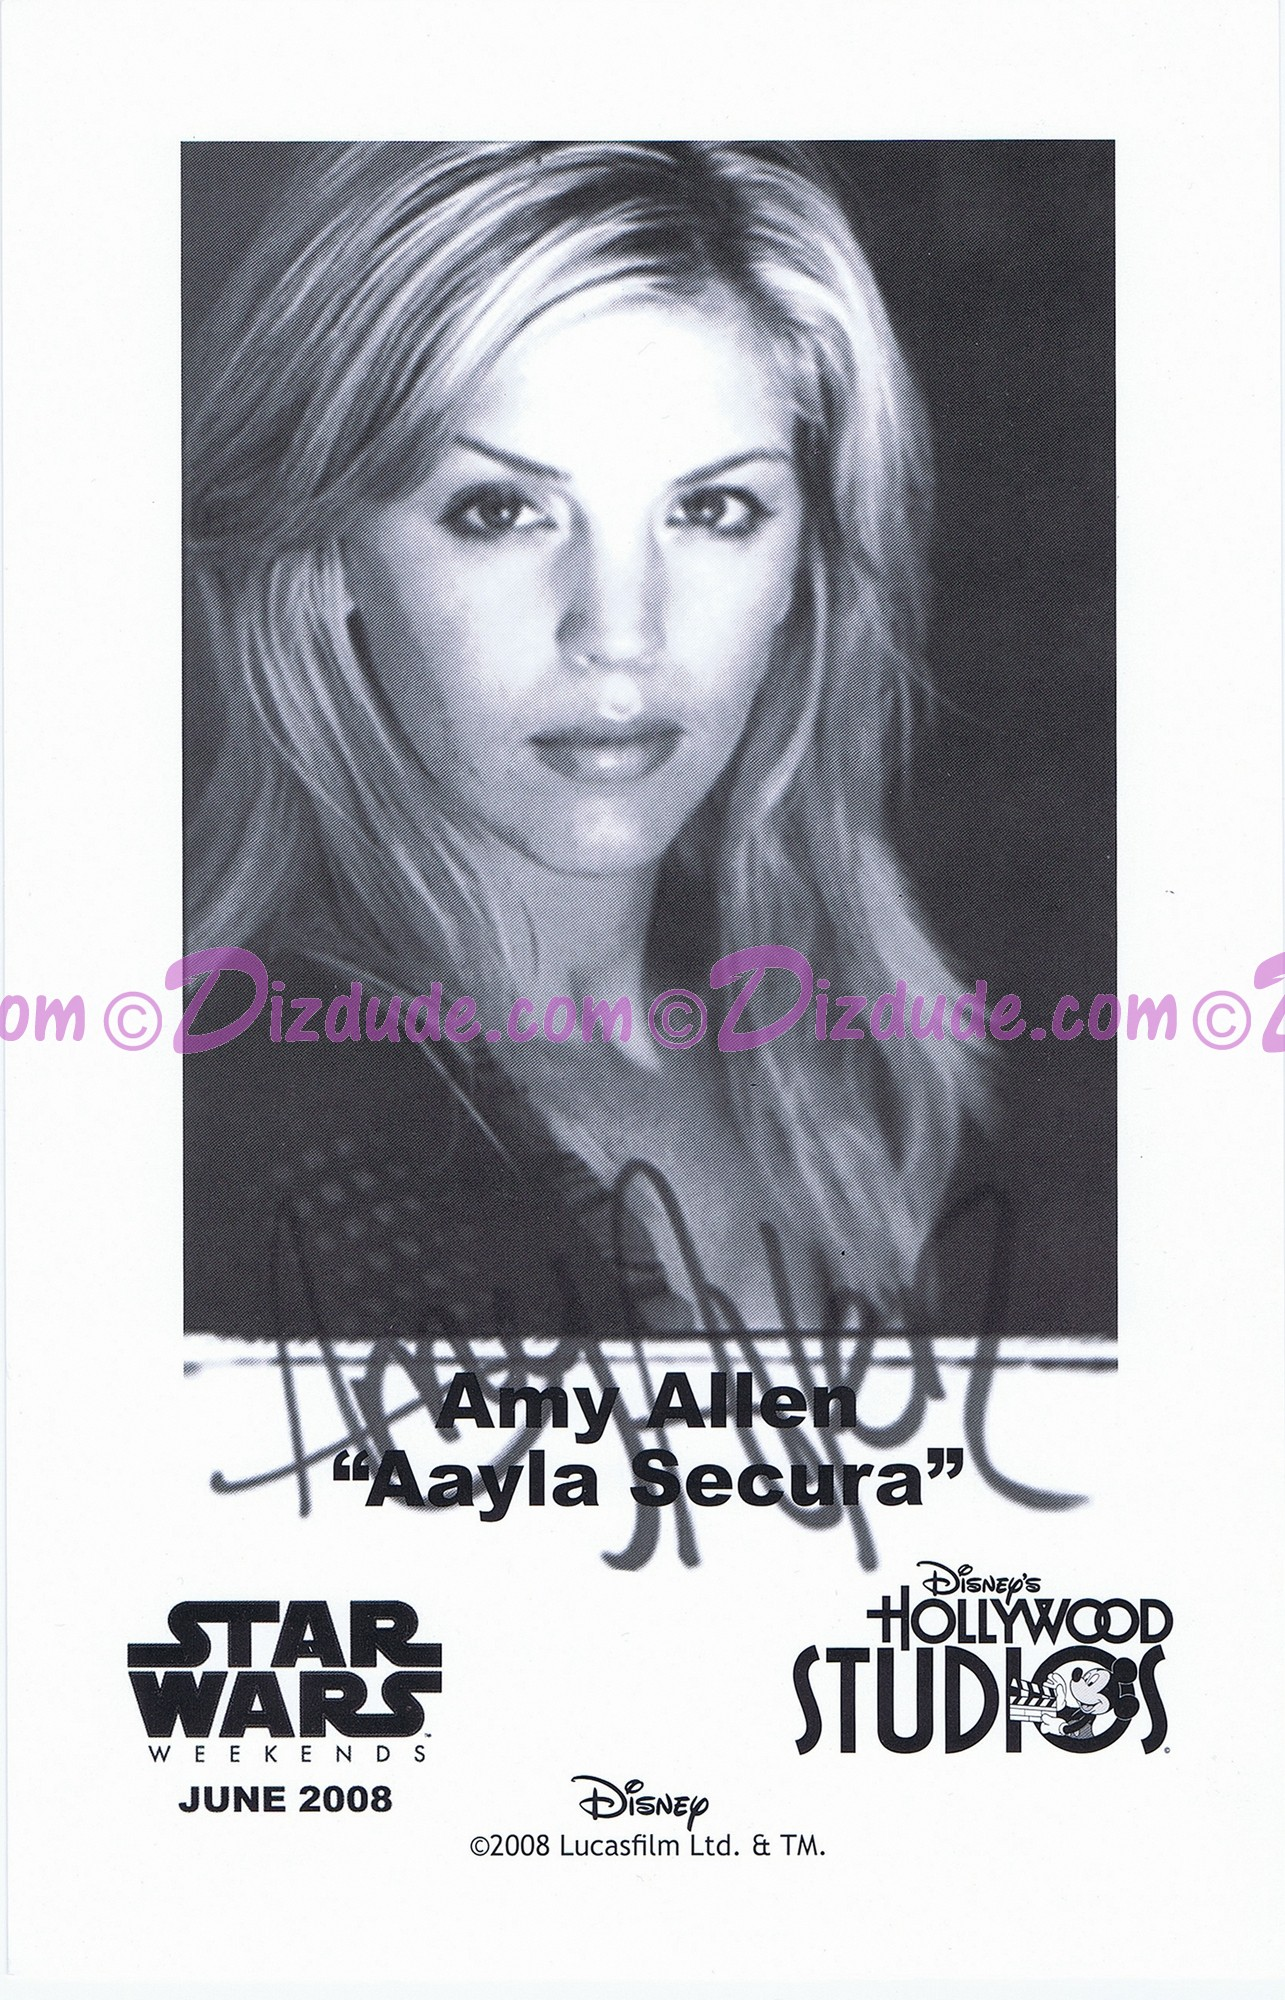 Amy Allen who played Aayla Secura Presigned Official Star Wars Weekends 2008 Celebrity Collector Photo © Dizdude.com